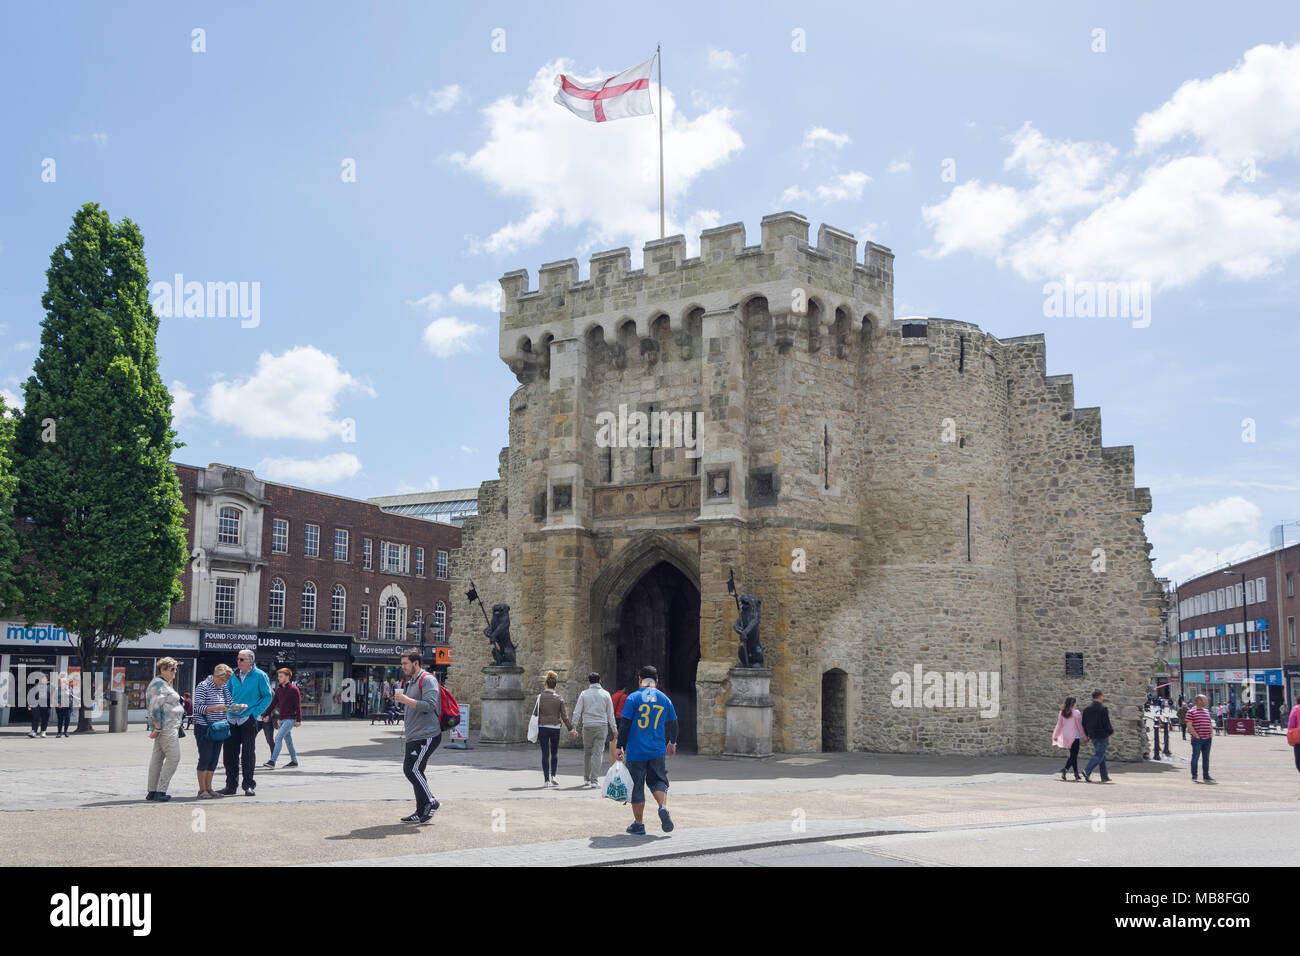 The 12th century Bargate from Above Bargate Street, Old Town, Southampton, Hampshire, England, United Kingdom - Stock Image